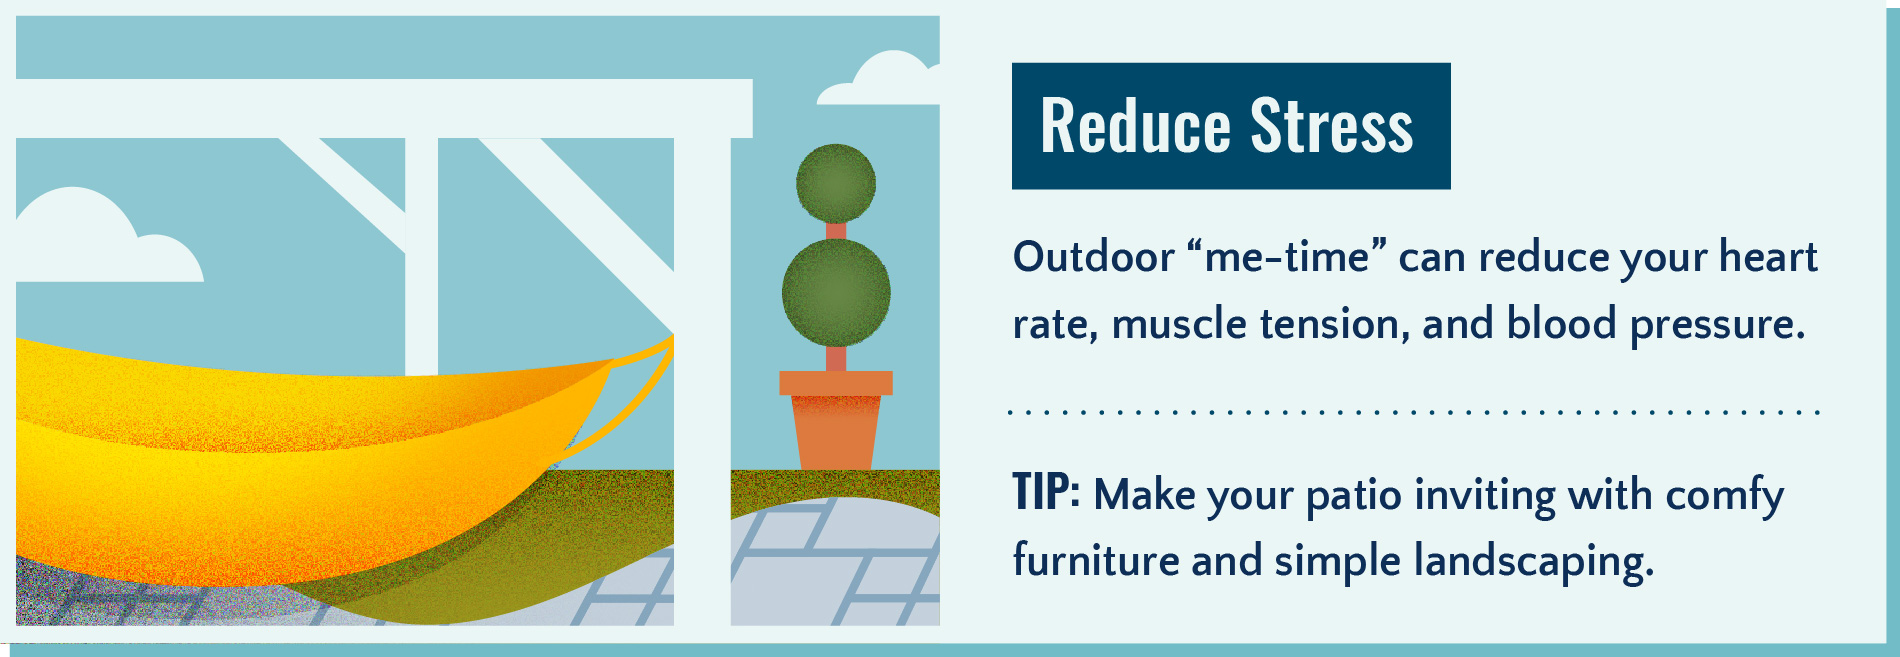 Spending time outdoors reduces stress.